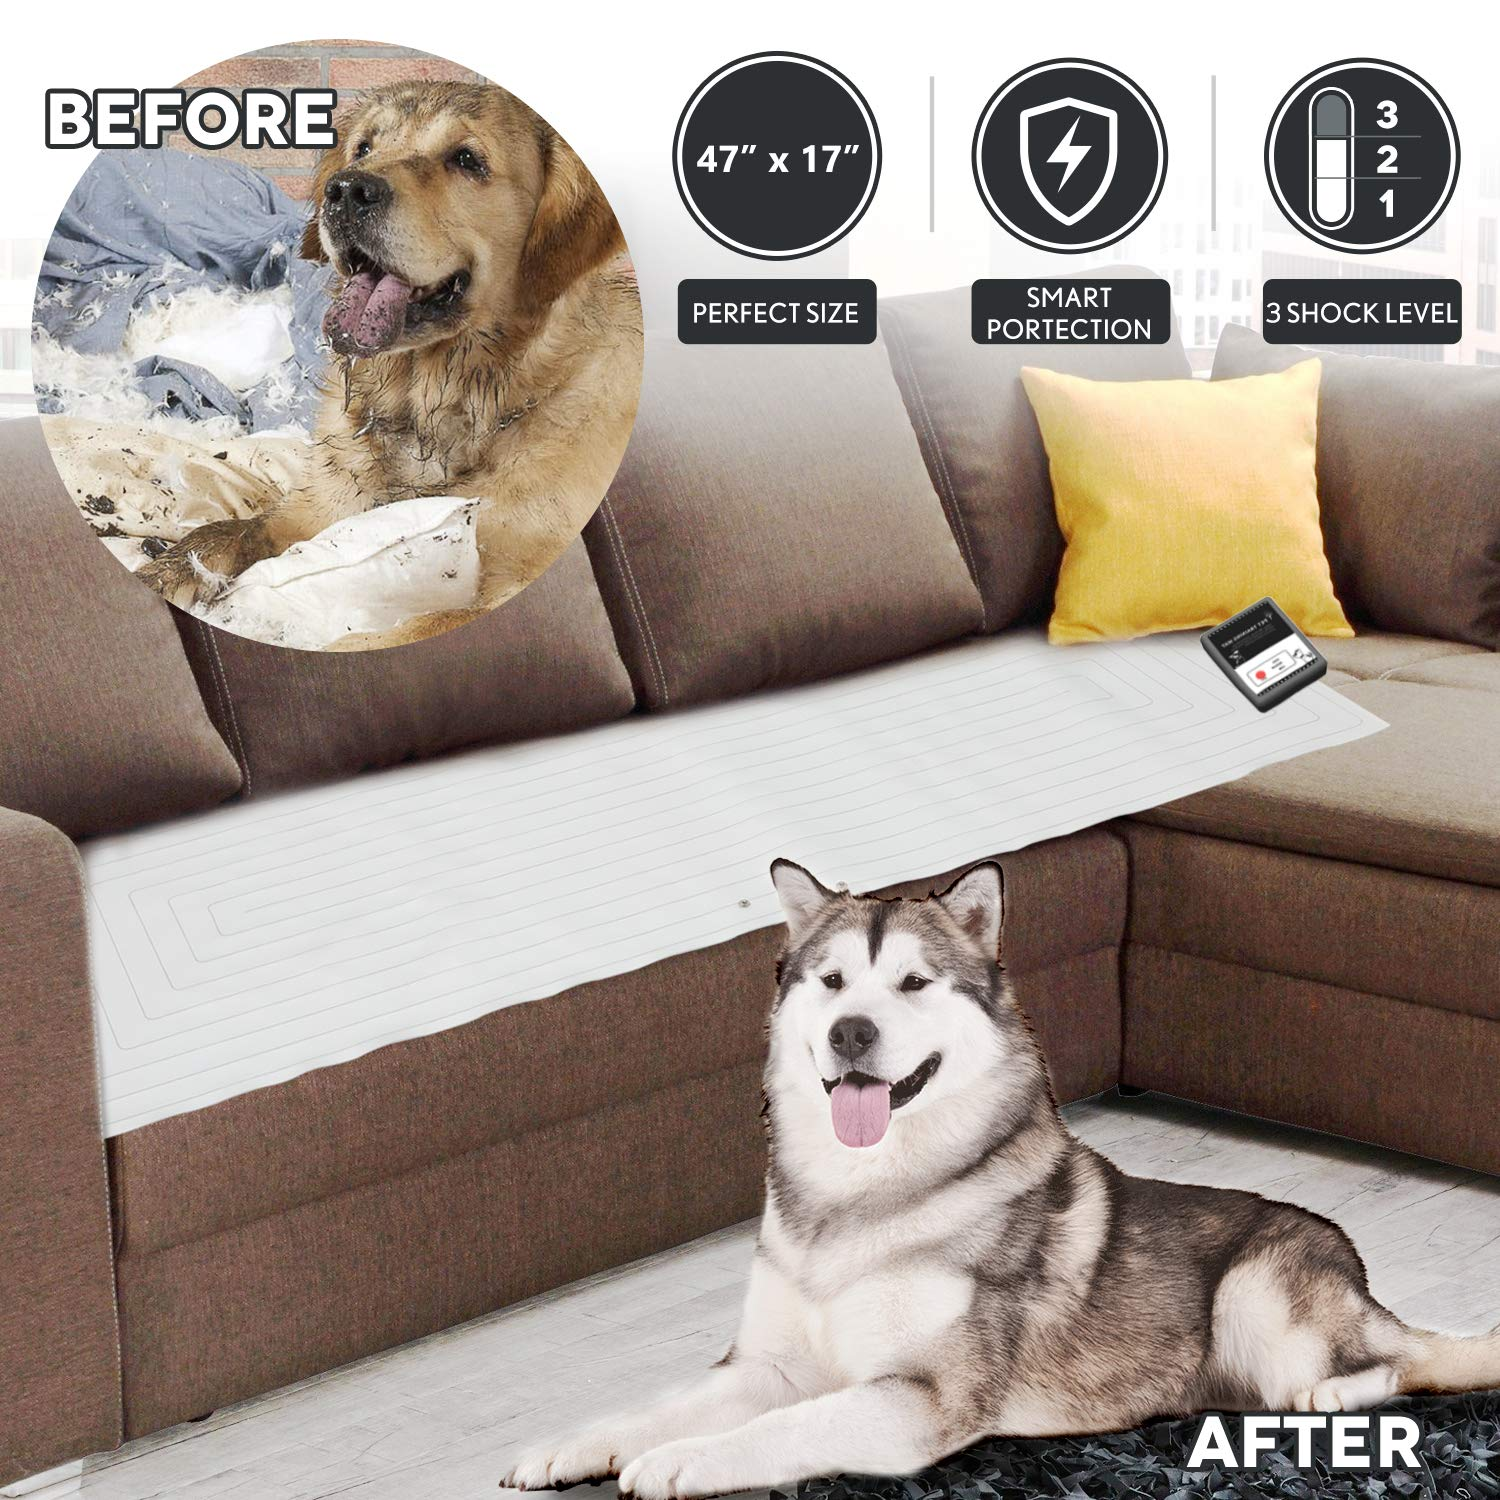 Pet Scat Cat Mat 47''x17'',1Pc Pet Training Shock Mat for Dogs,3 Shock Level,Safety Low Voltage Battery,Intelligent Safety Protect for Pets,Keep Dog Off Couch Sofa Furniture w/LED Indicator,Wide Cover by lesotc